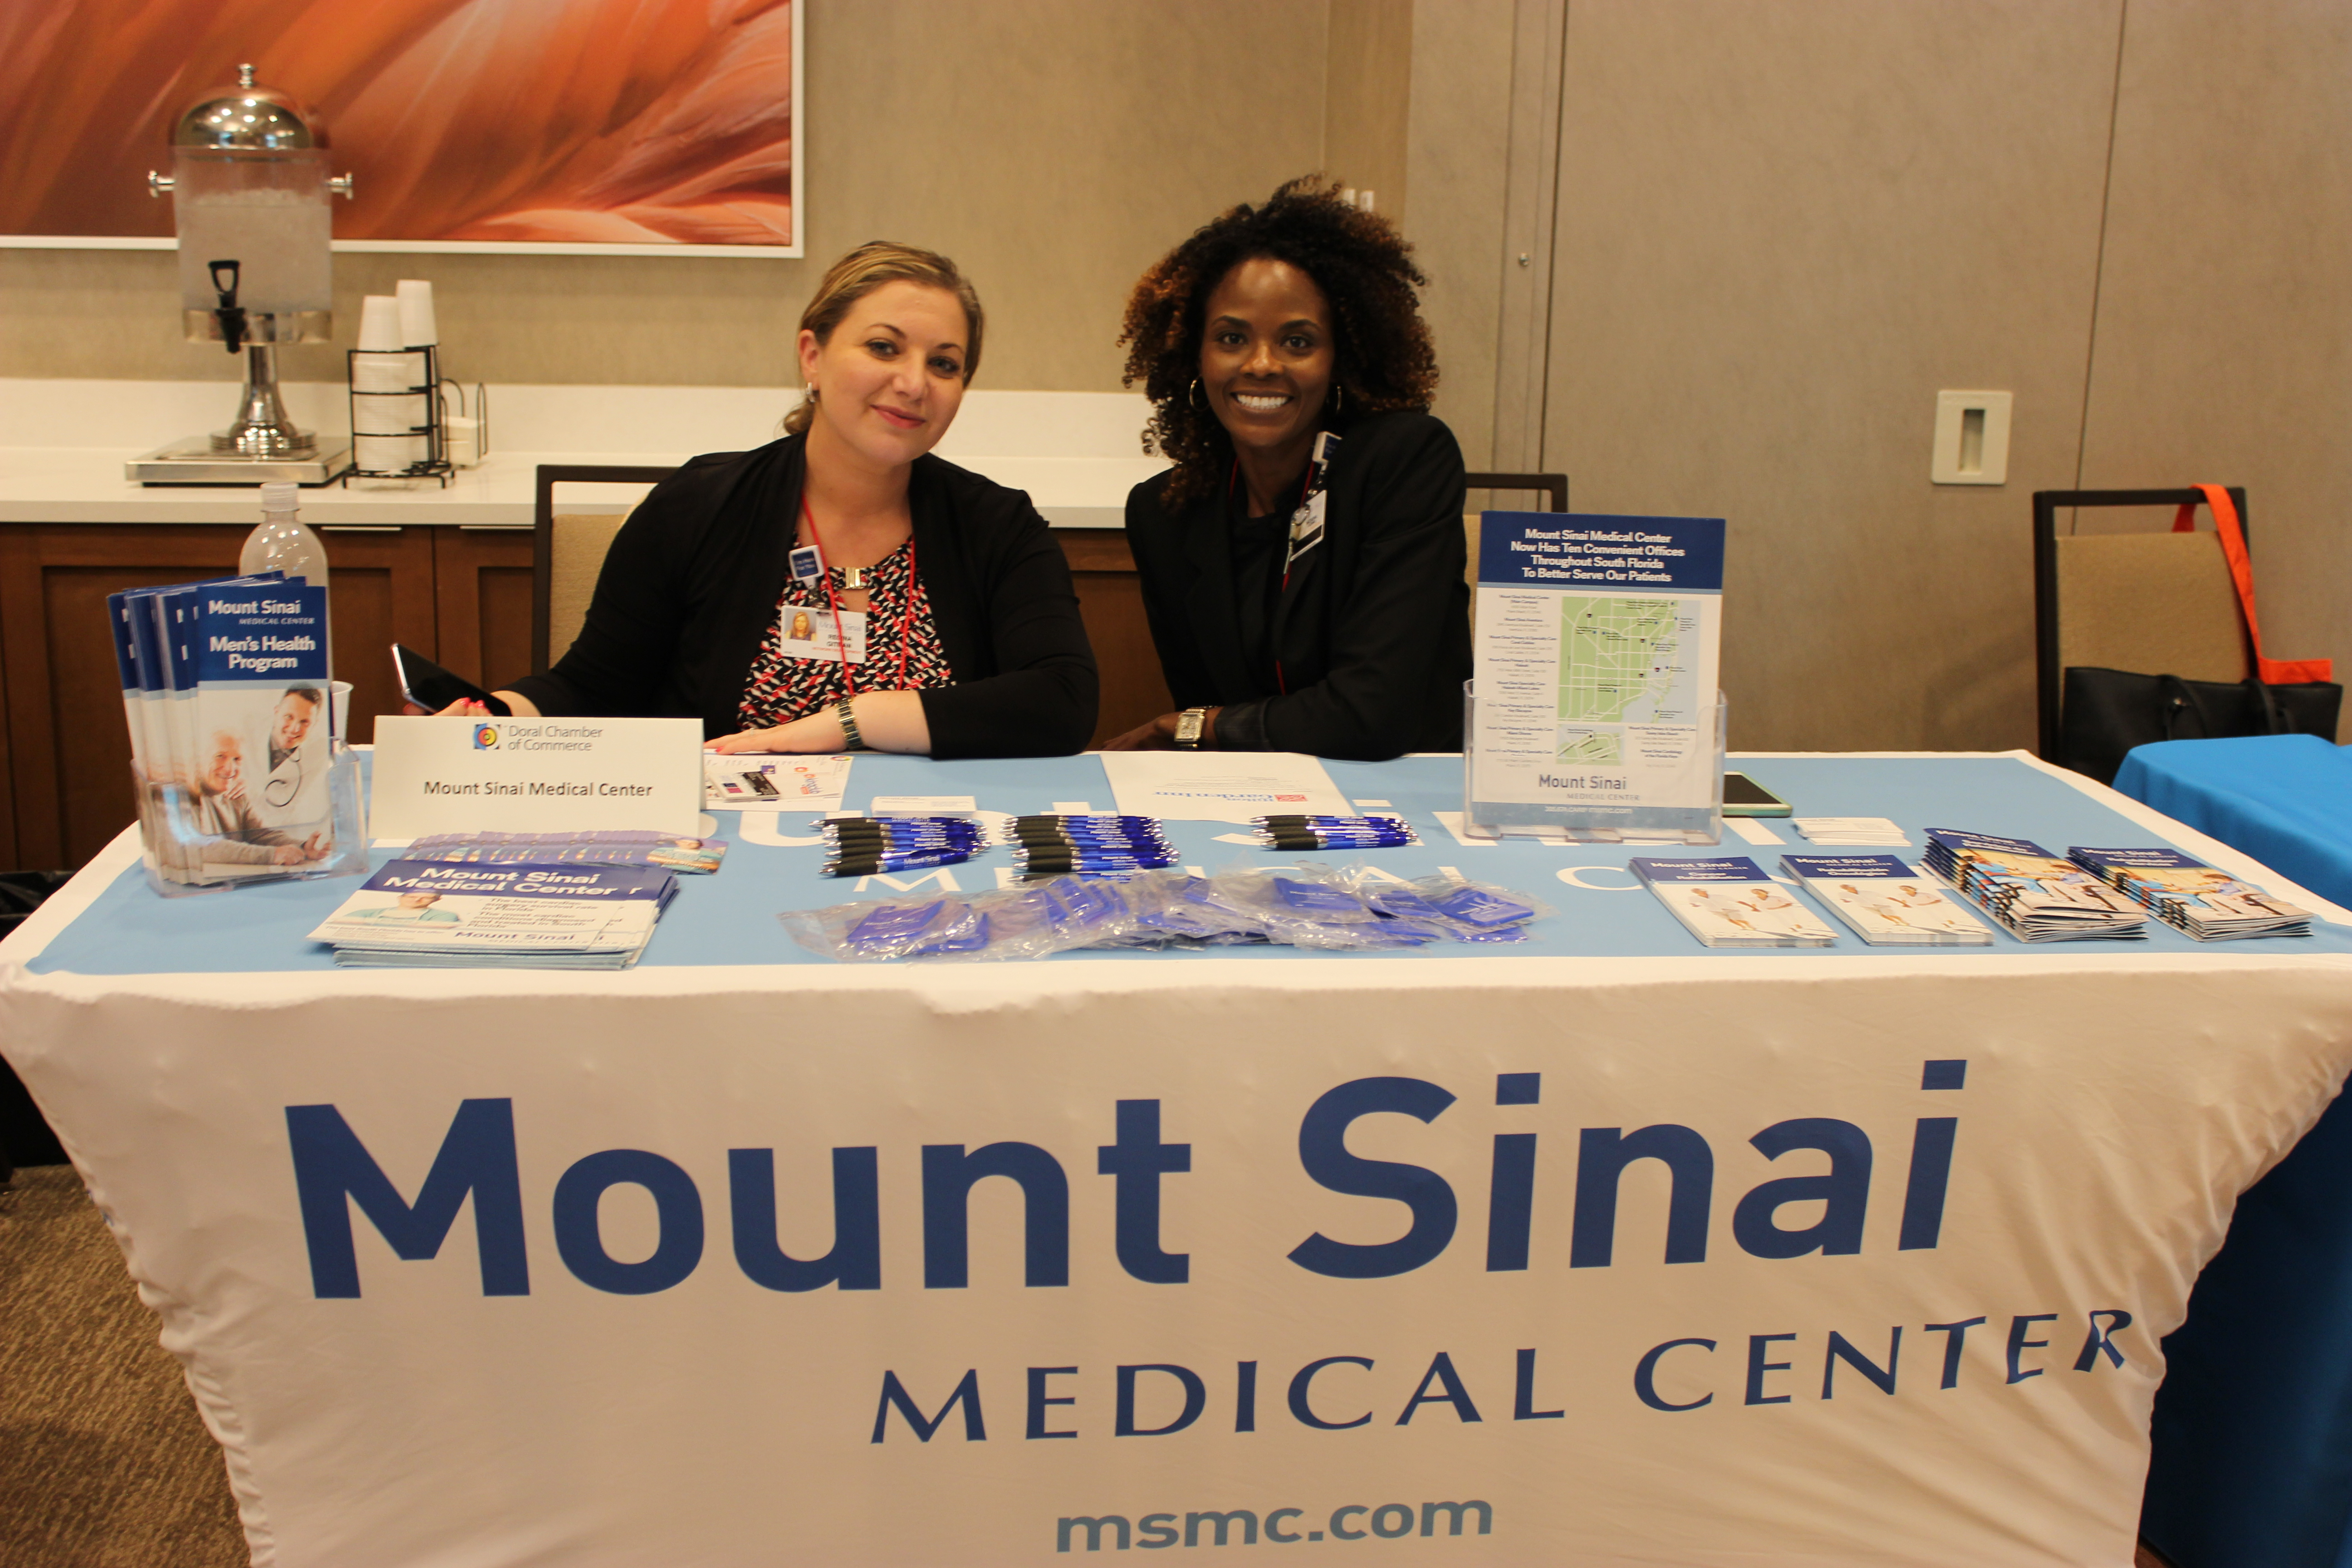 Mount Sinai Medical Center at PowerBusiness Expo May 2017, Doral Chamber of Commerce event.